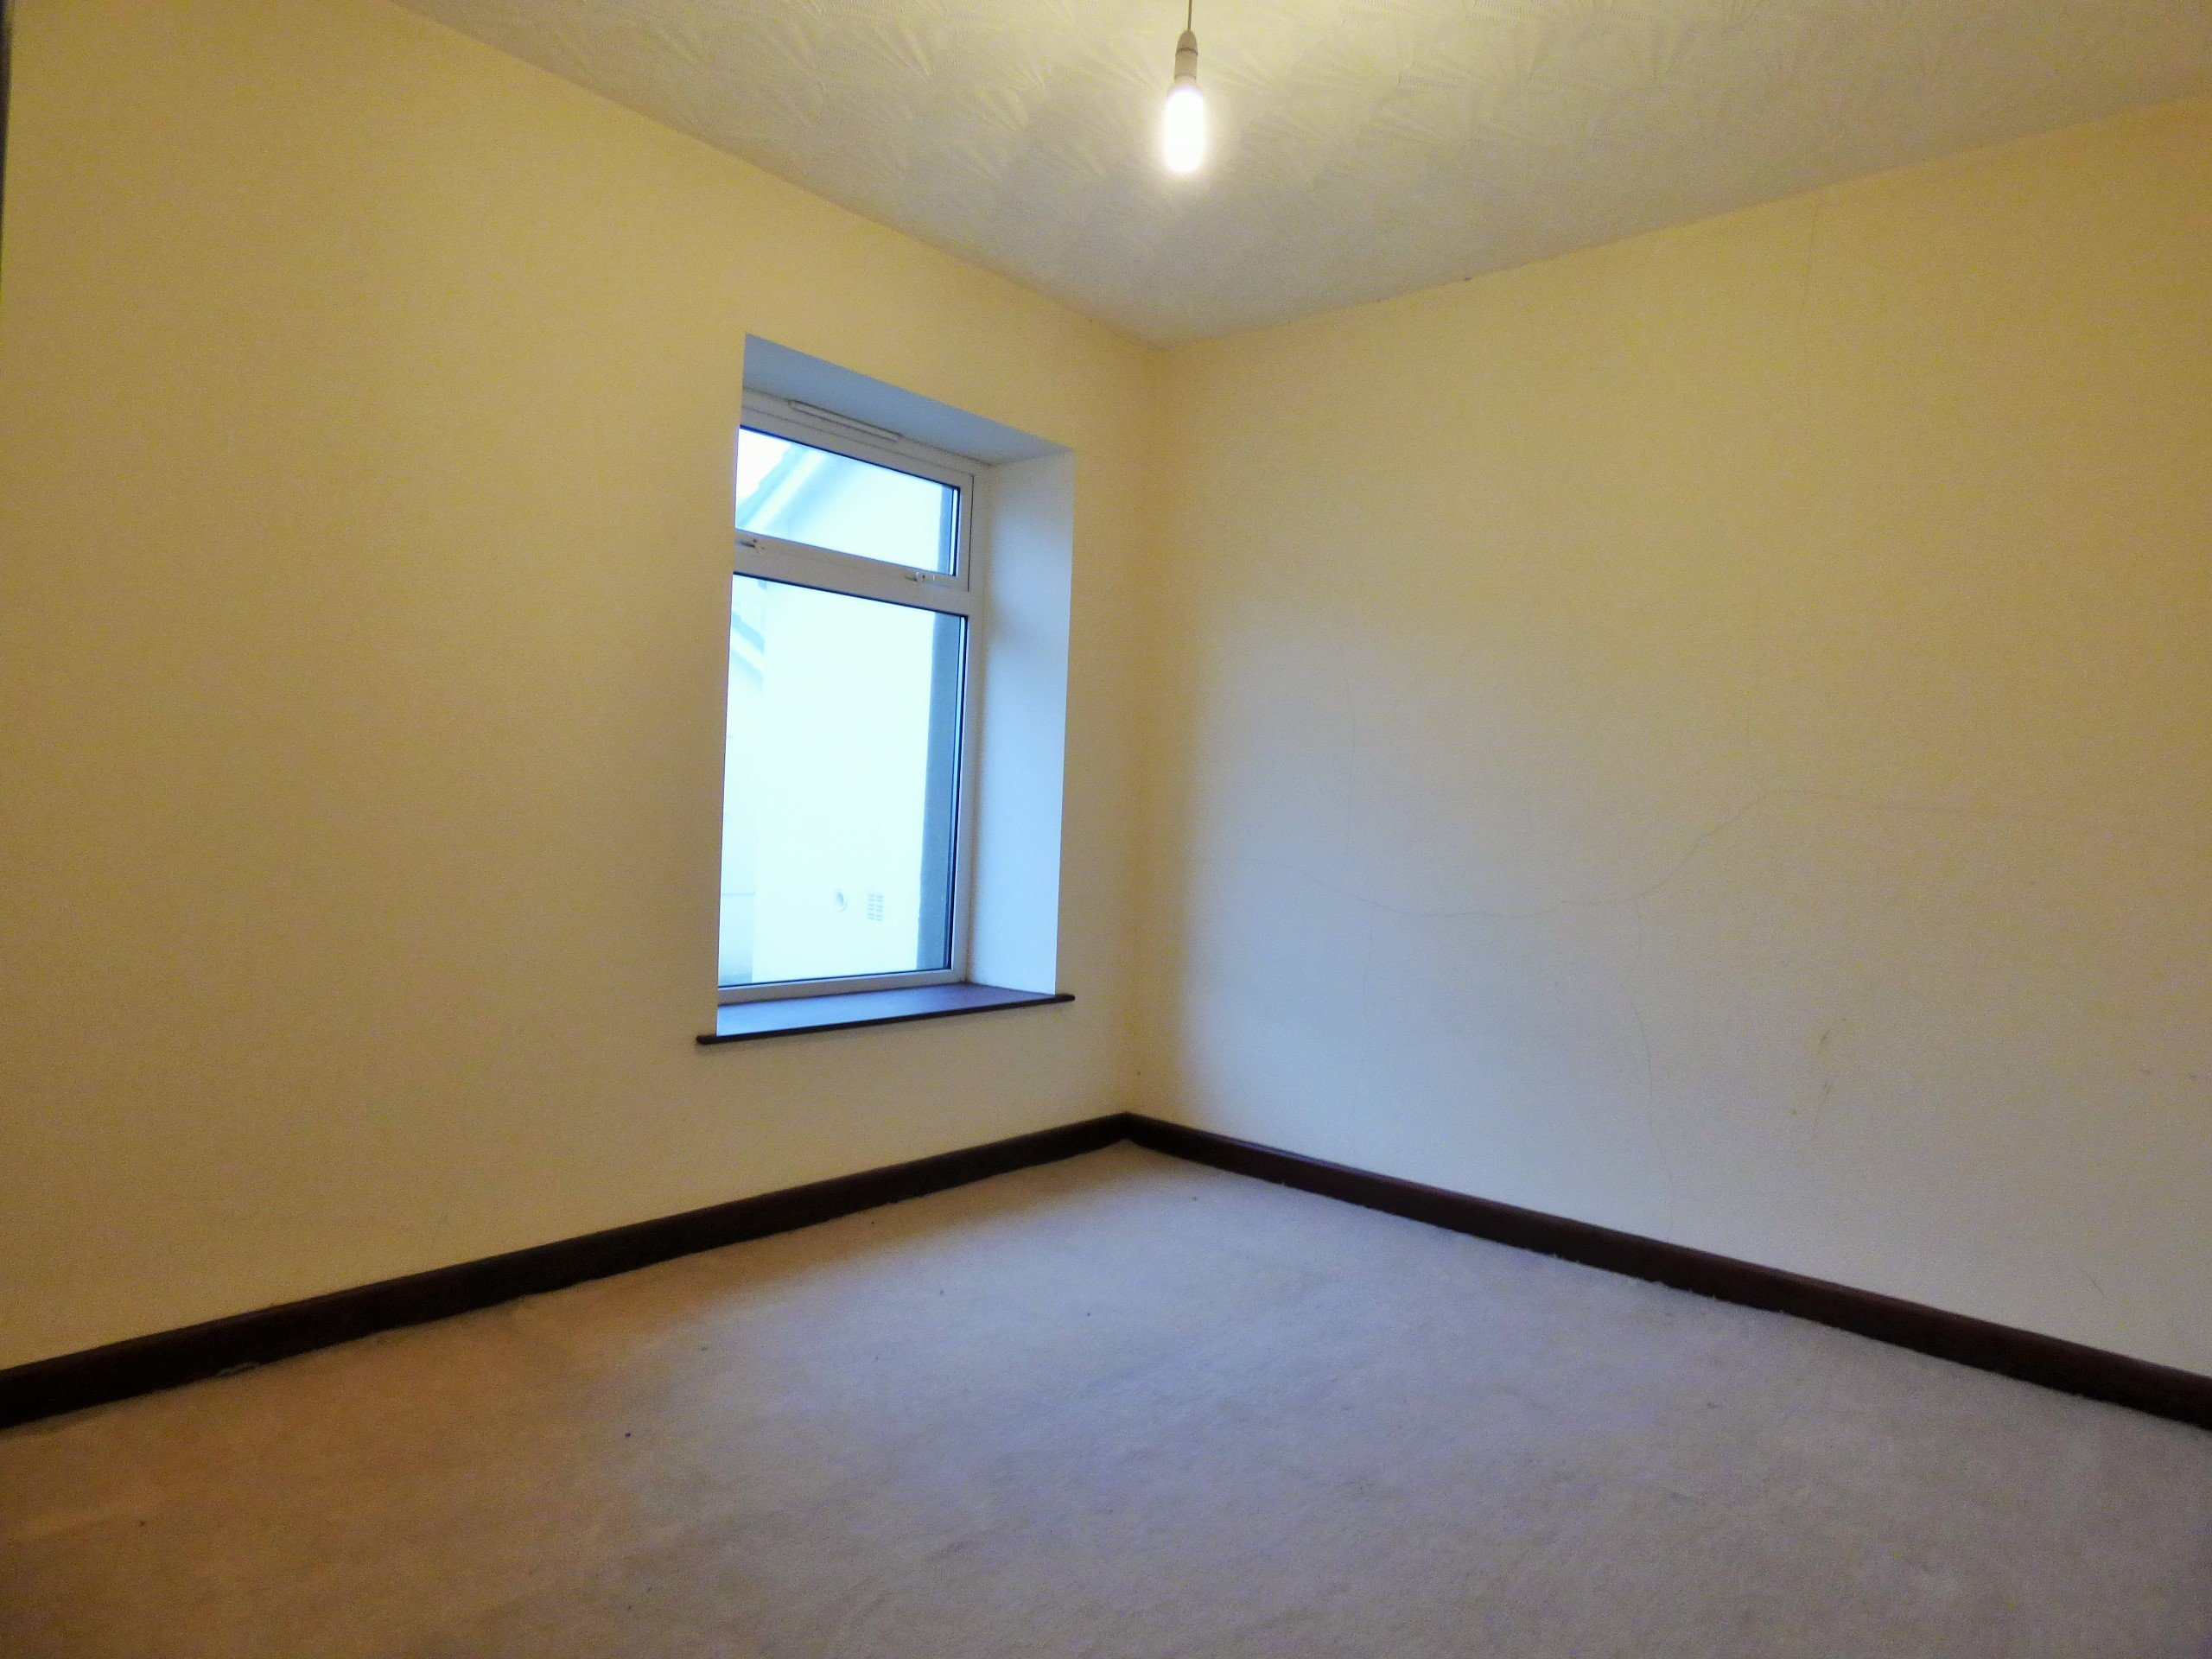 Wisemove Property for sale. Tanybryn House, Pontycymmer. Bedroom 2